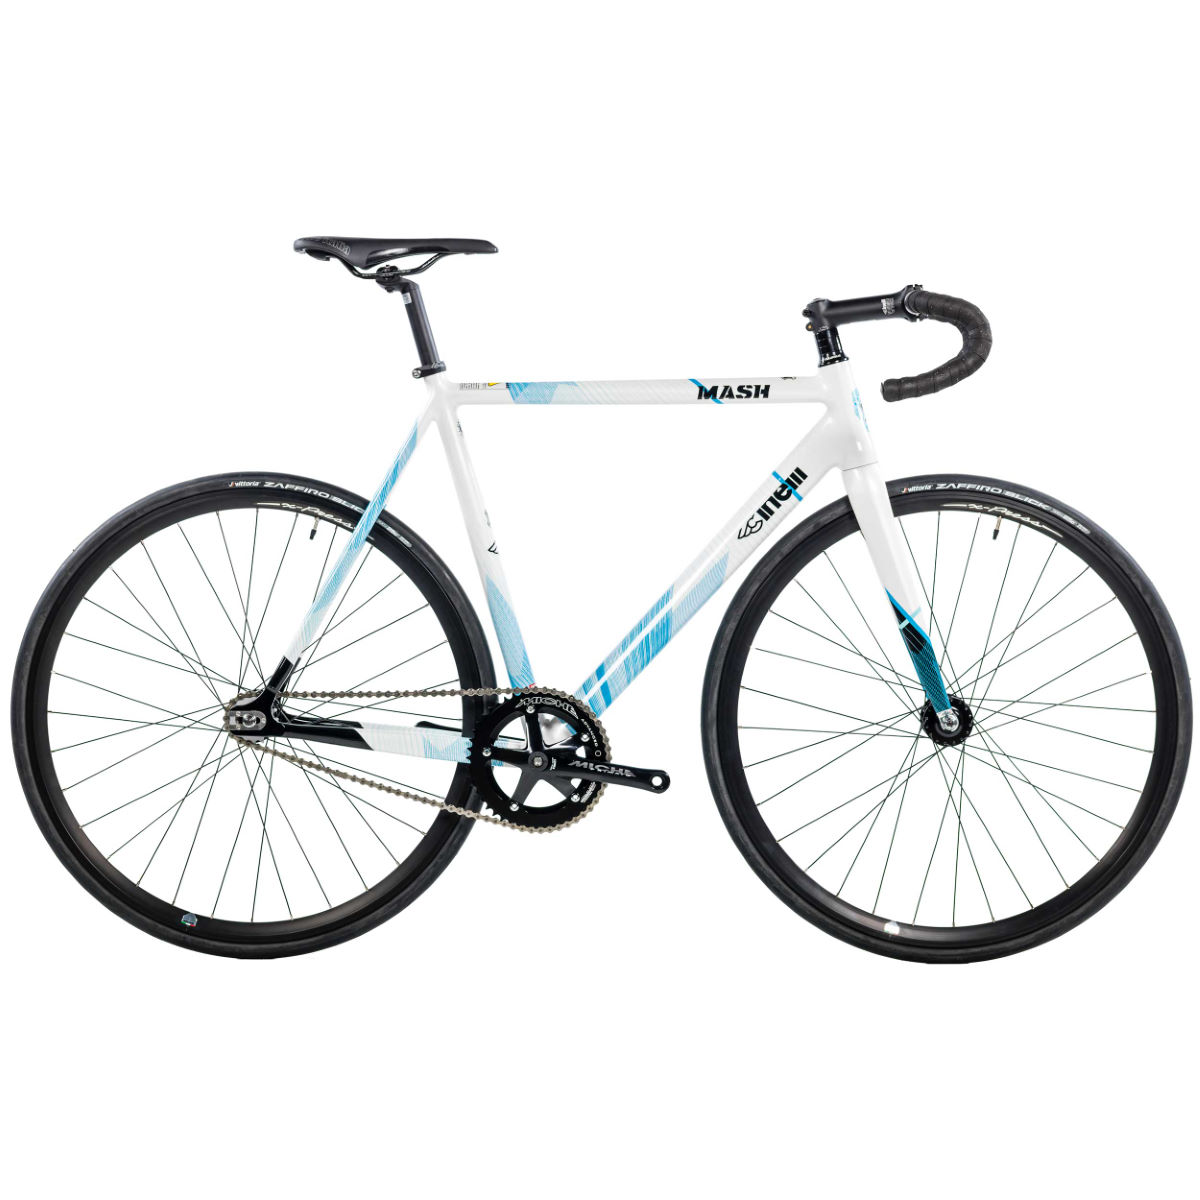 Vélo Cinelli MASH Parallax Single Speed (2017) - L Stock Bike Cyan Single speed